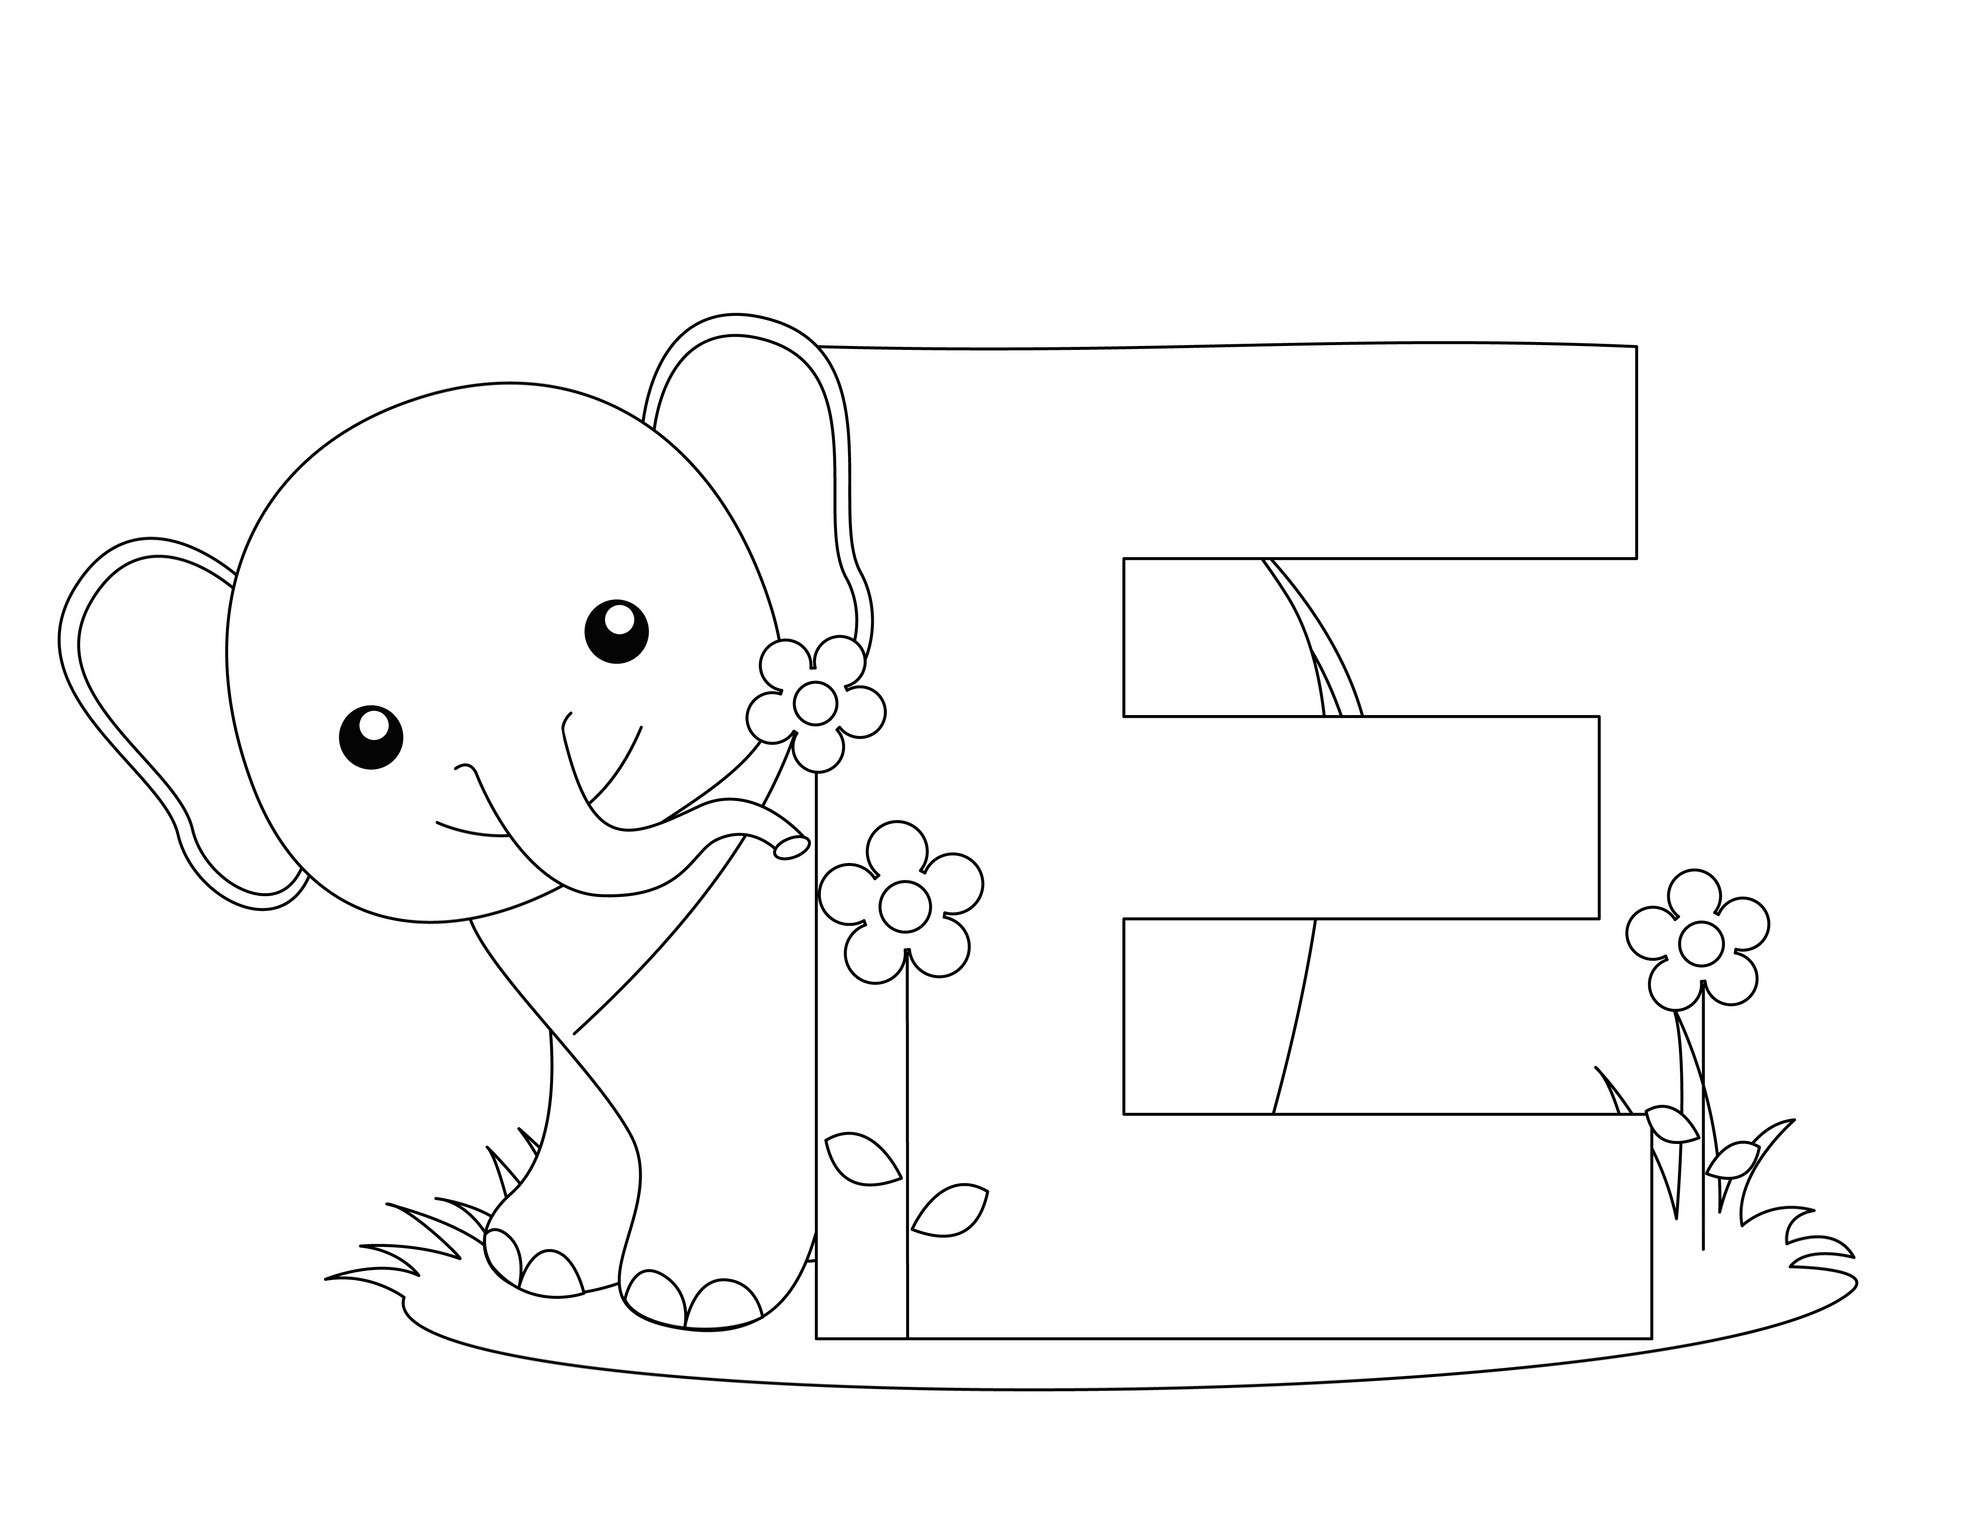 alfabet coloring pages - photo#4